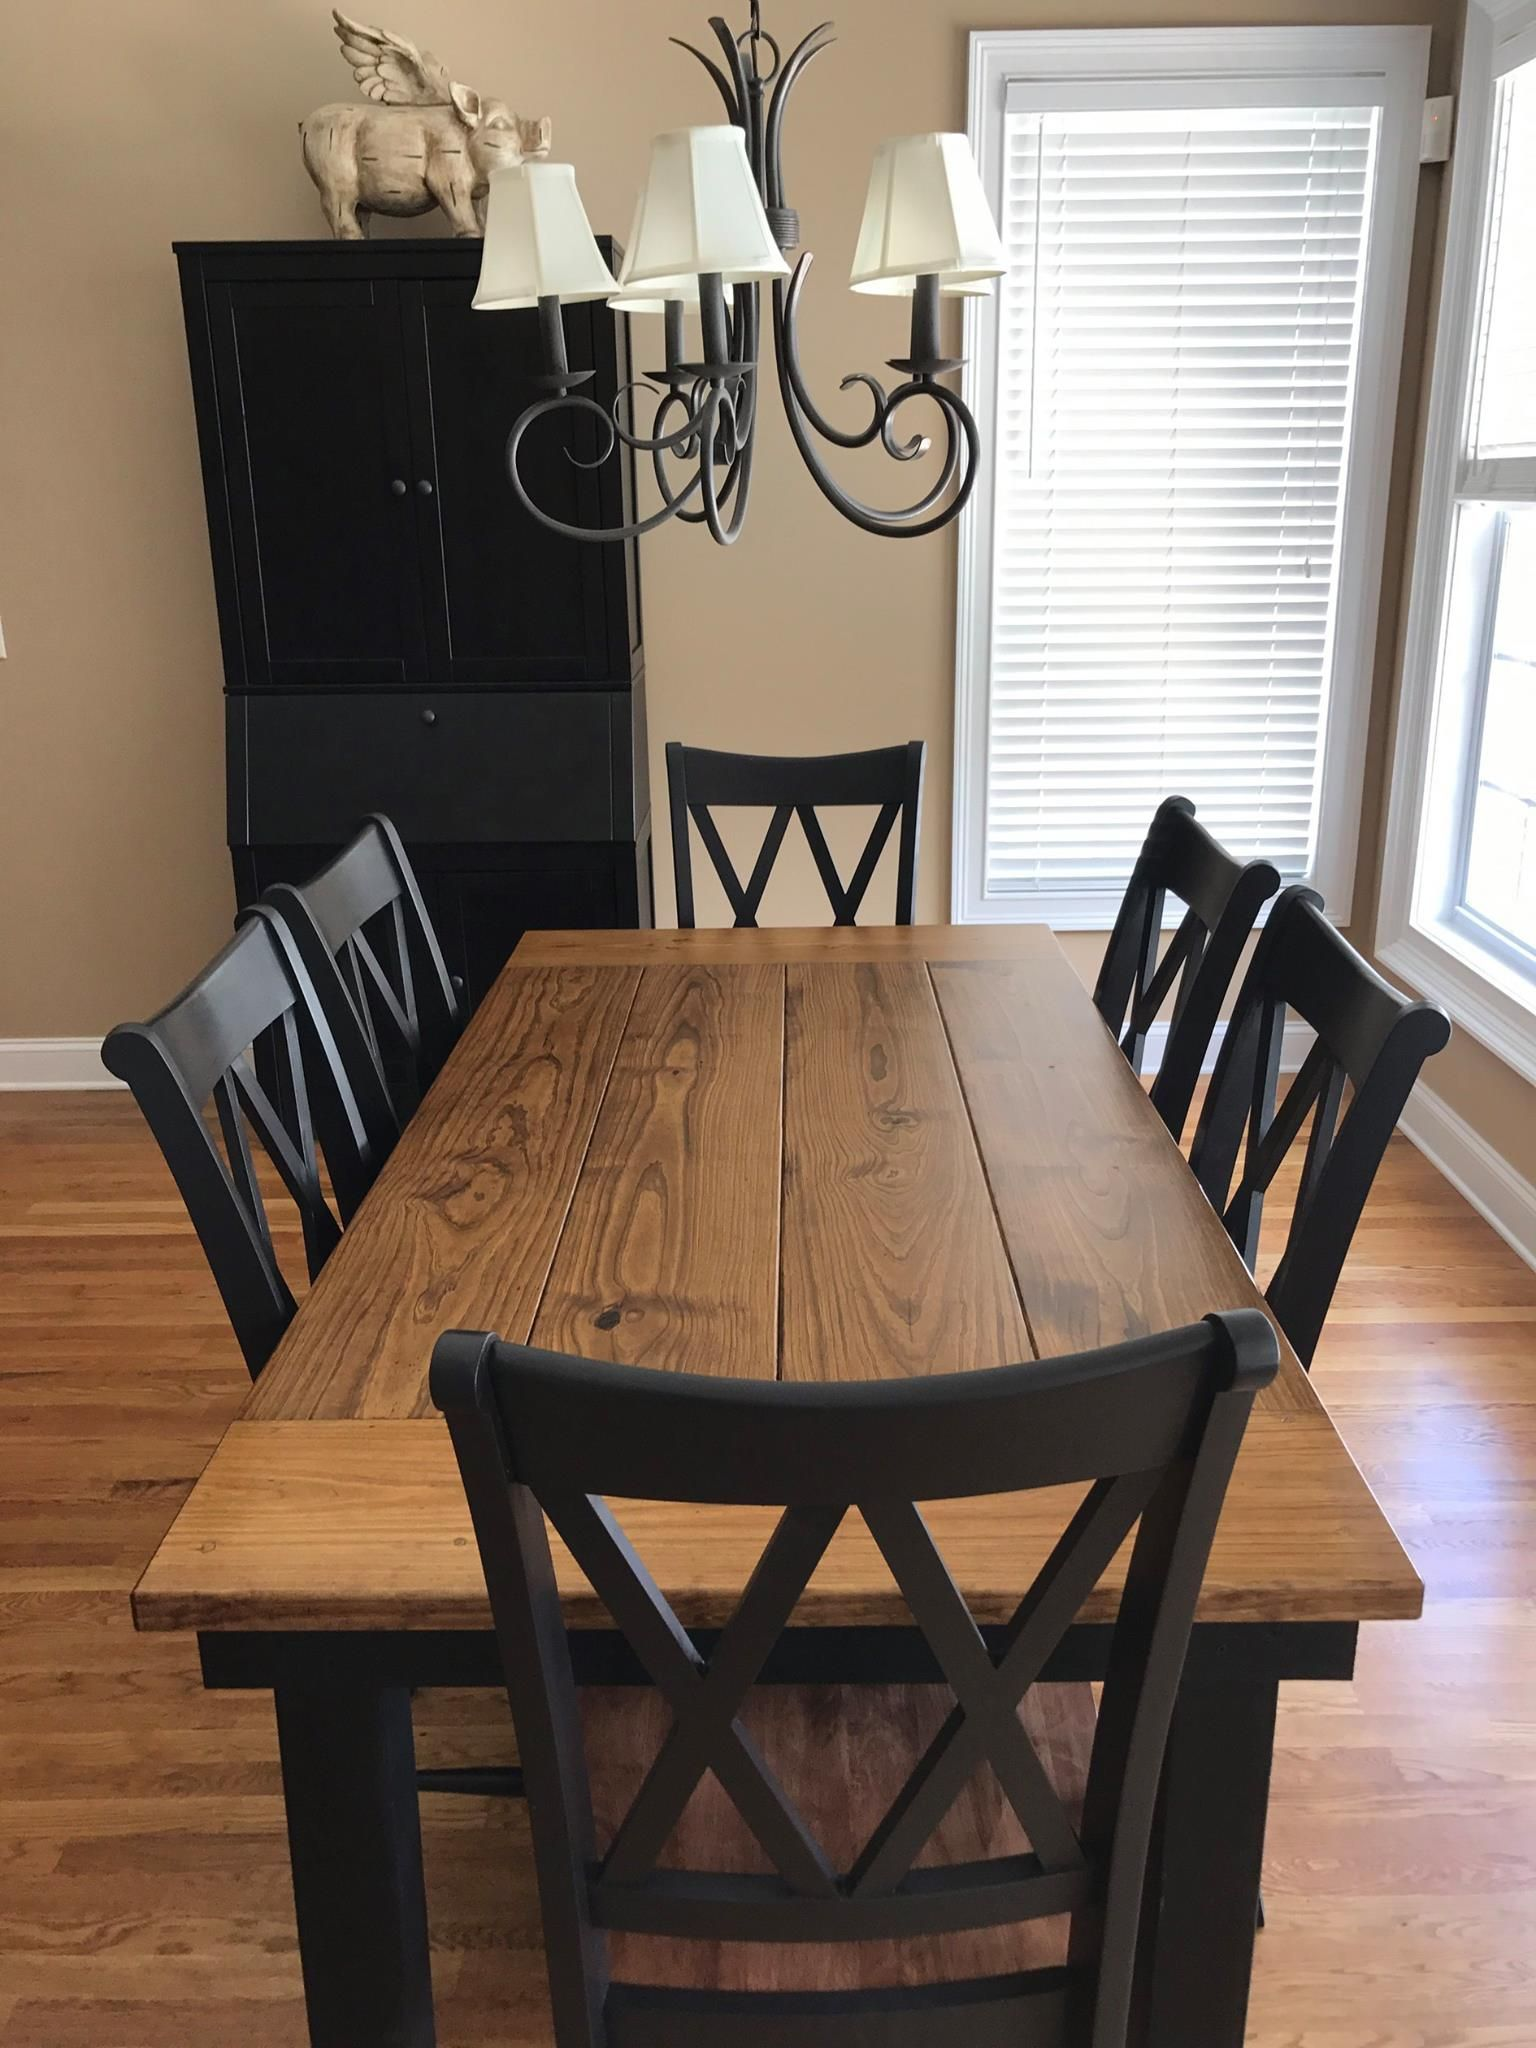 Farmers Dining Table And Chairs La Z Boy Delano Big Tall Executive Office Chair Chestnut Steel X Base Pine Farmhouse Tables Pinterest